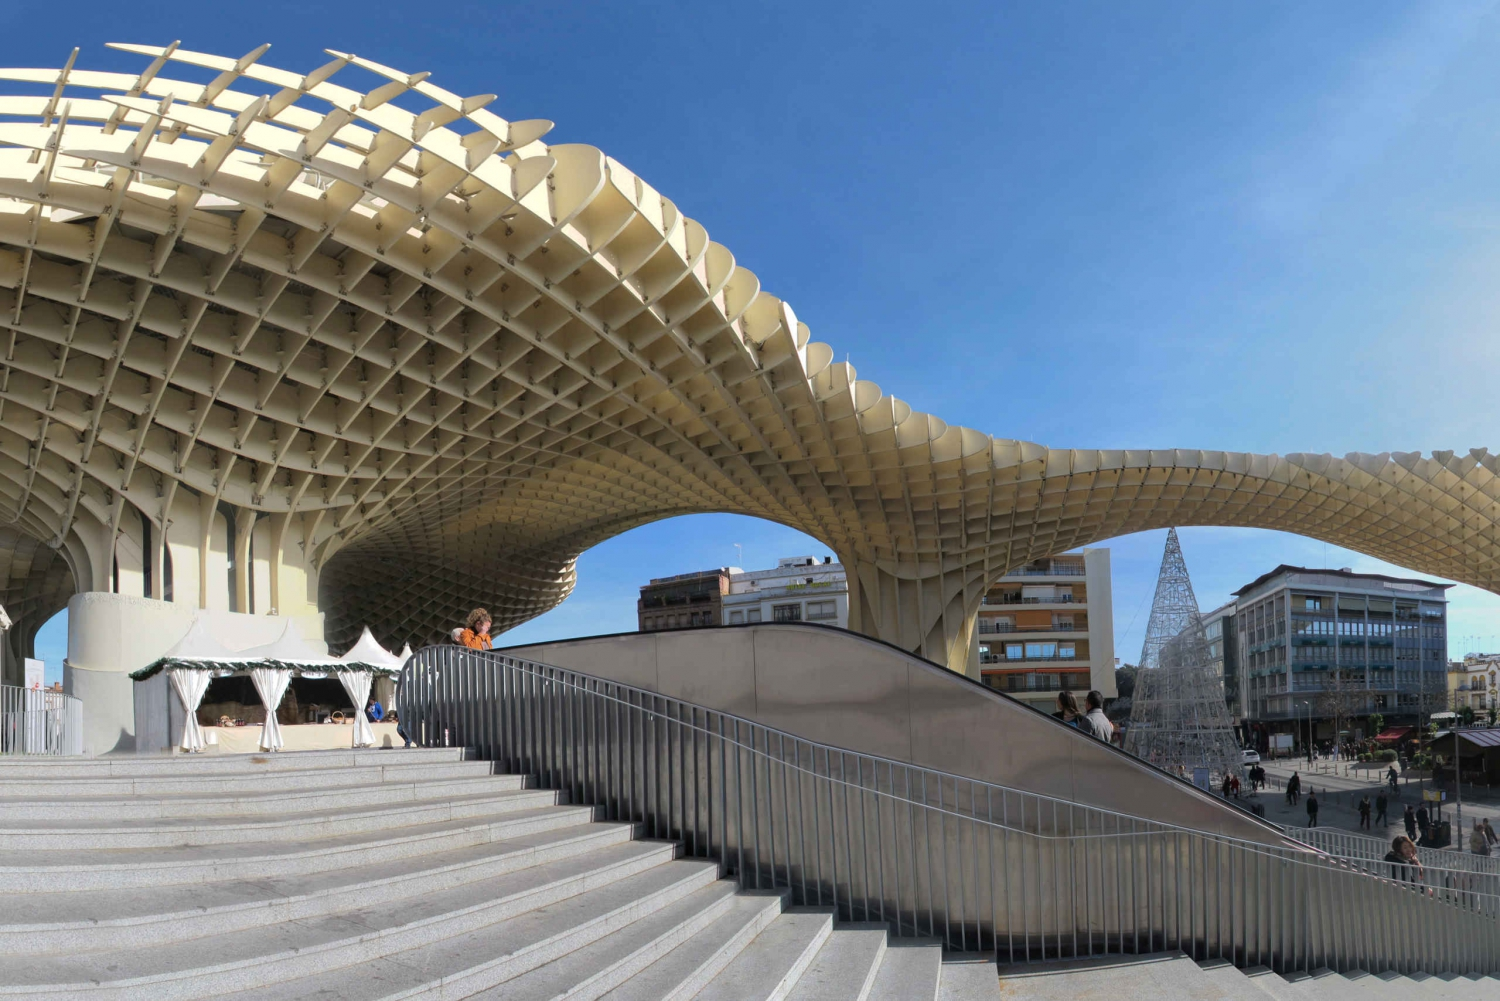 Discover Seville from Madrid by High-Speed Train